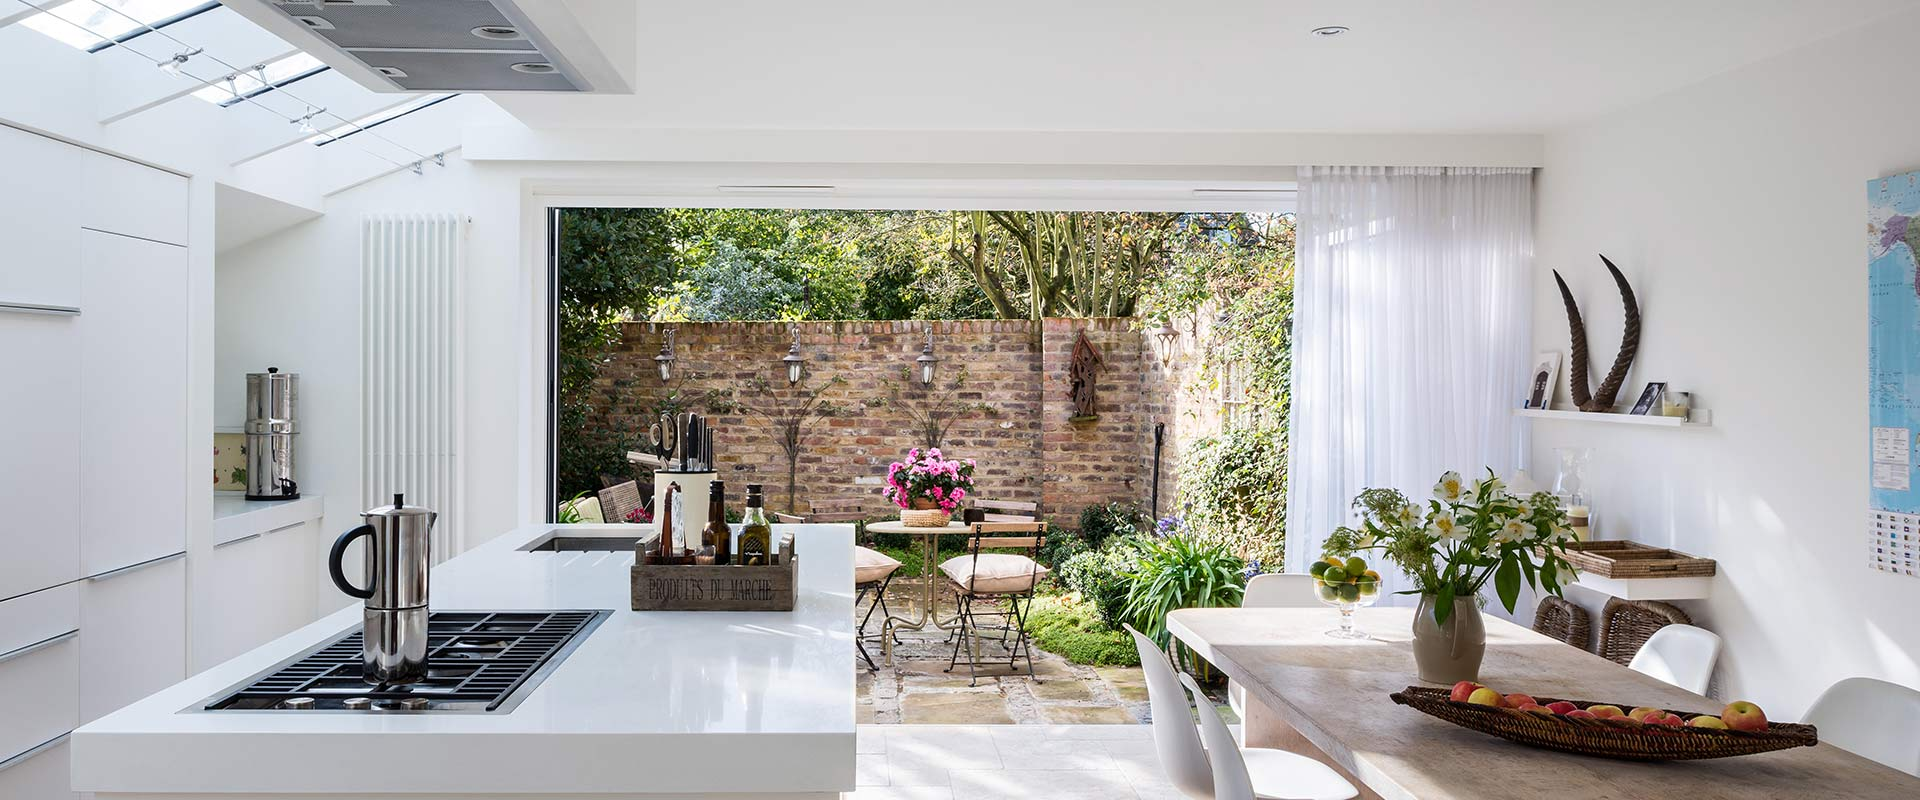 garden view of aluminium bifold doors for kitchen extension by Bi Fold Doors UK